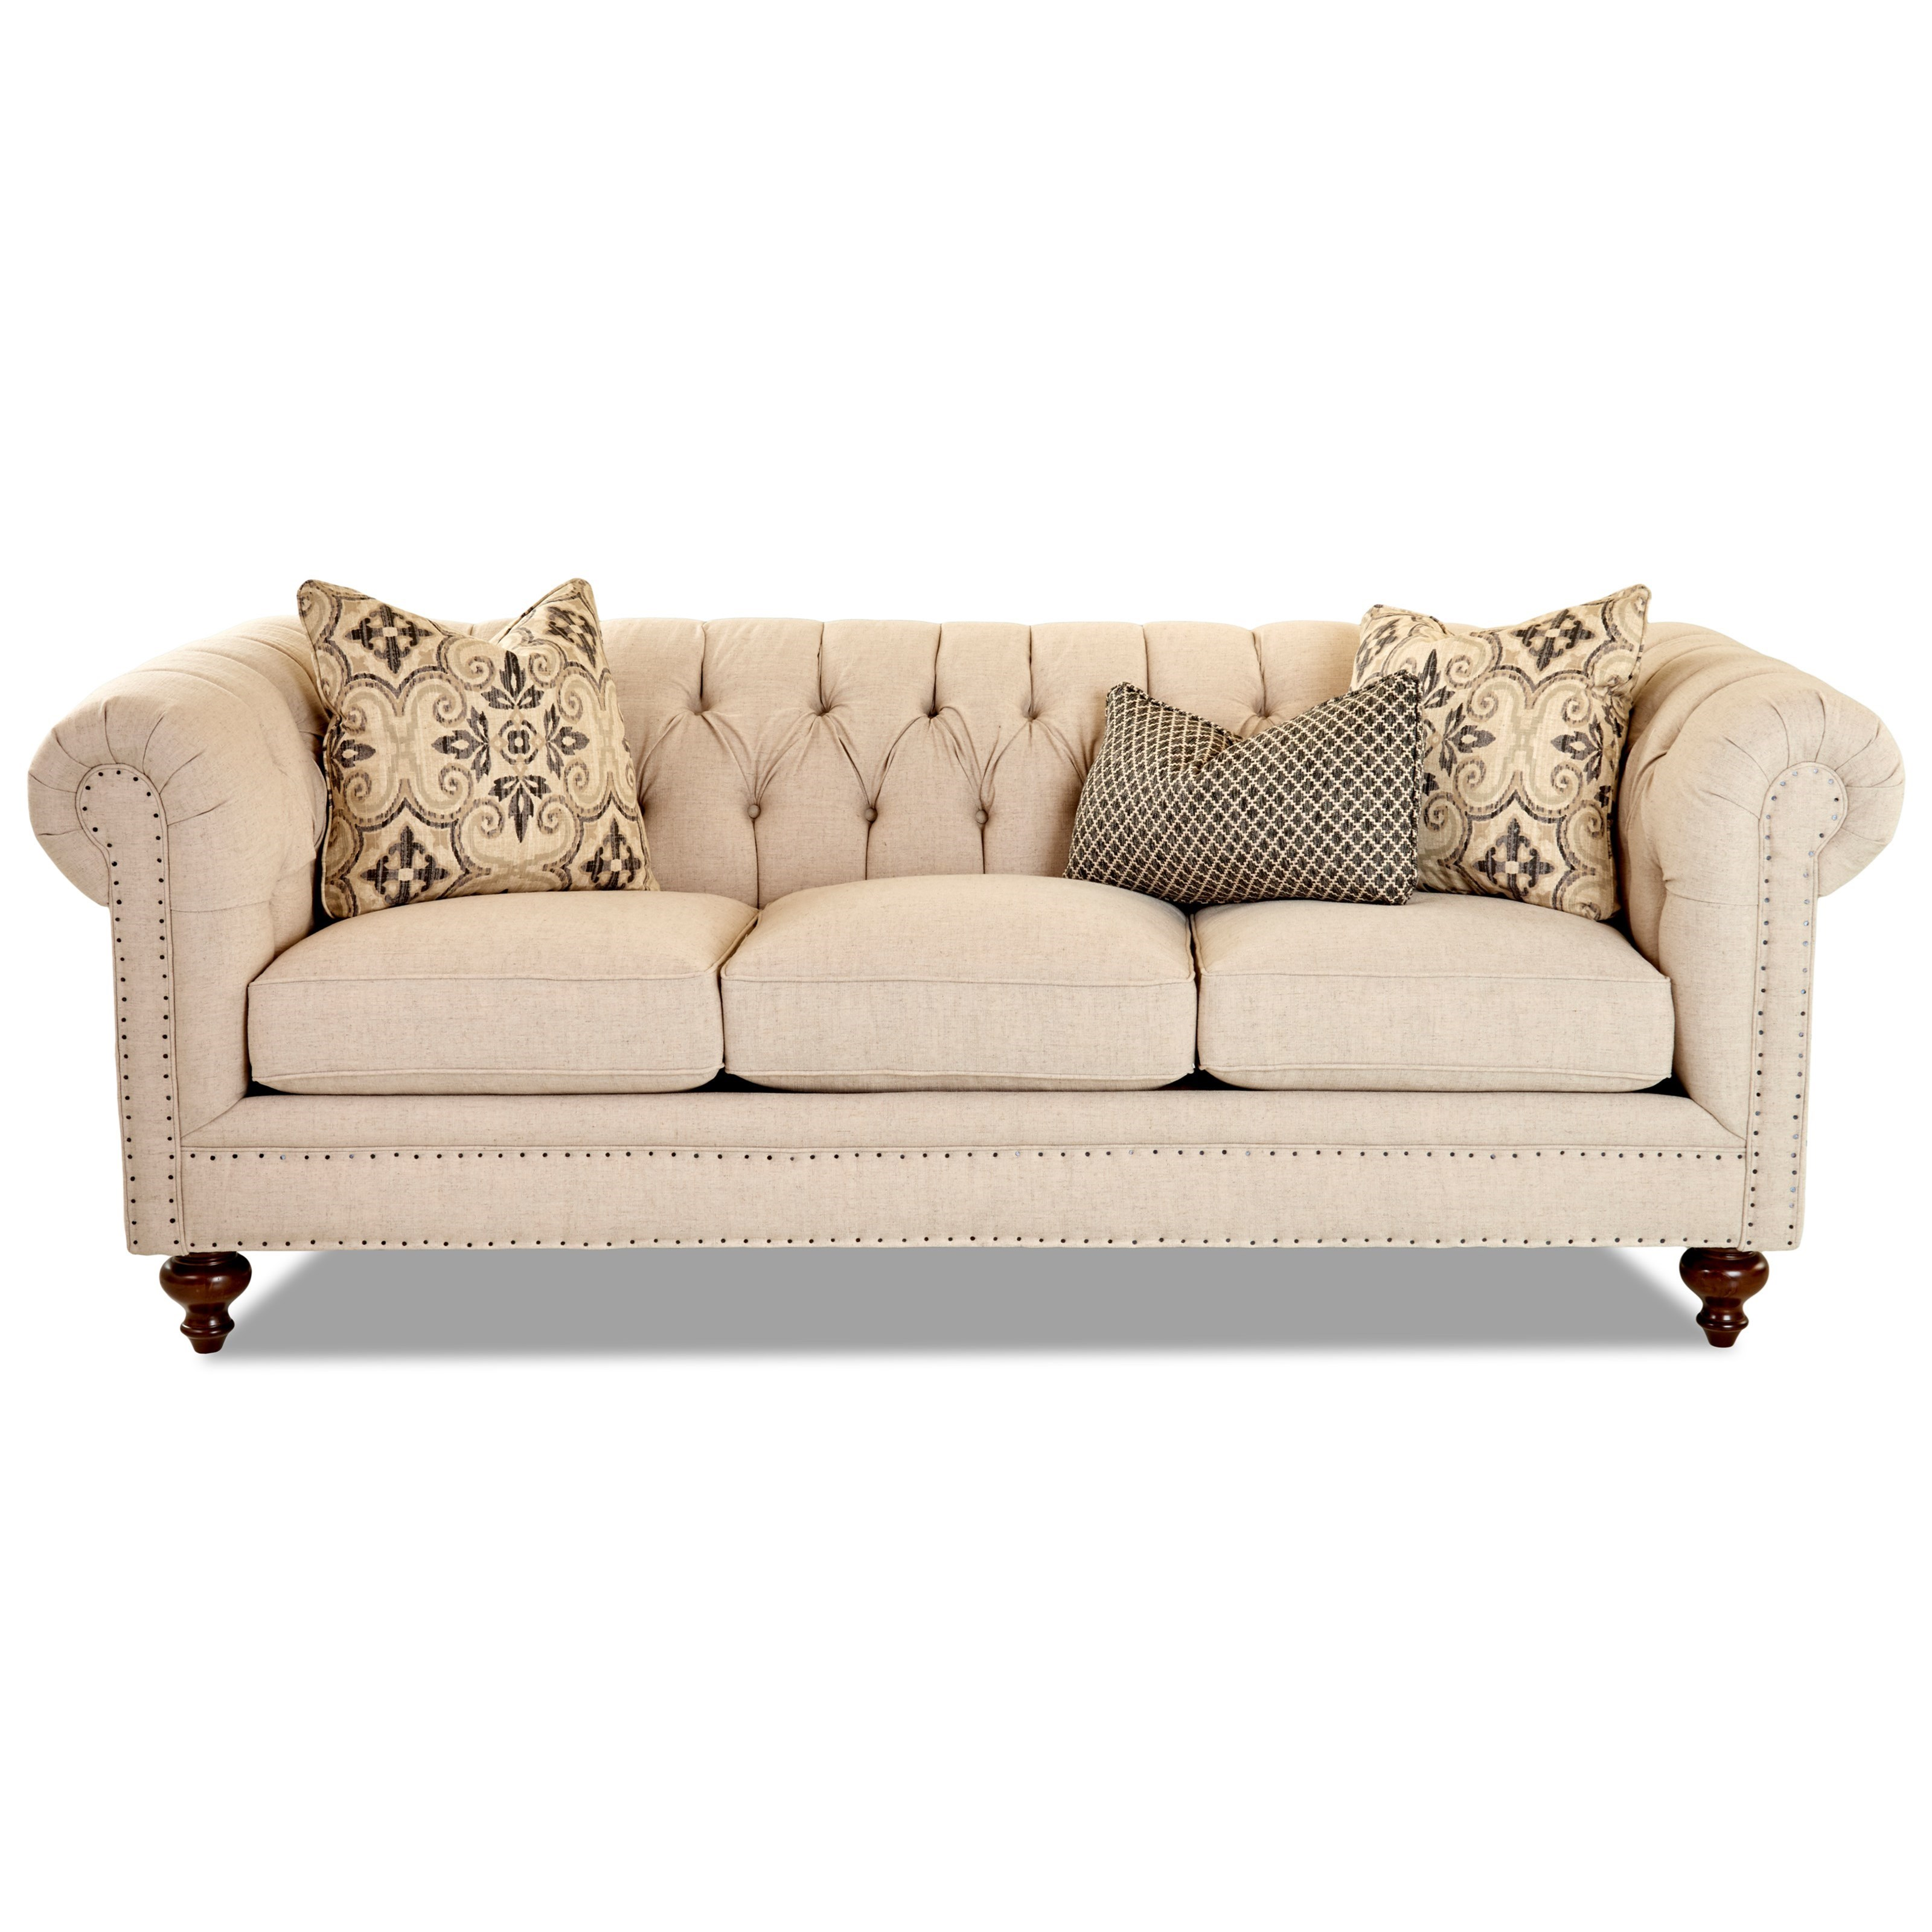 Charlotte Sofa by Klaussner at Northeast Factory Direct